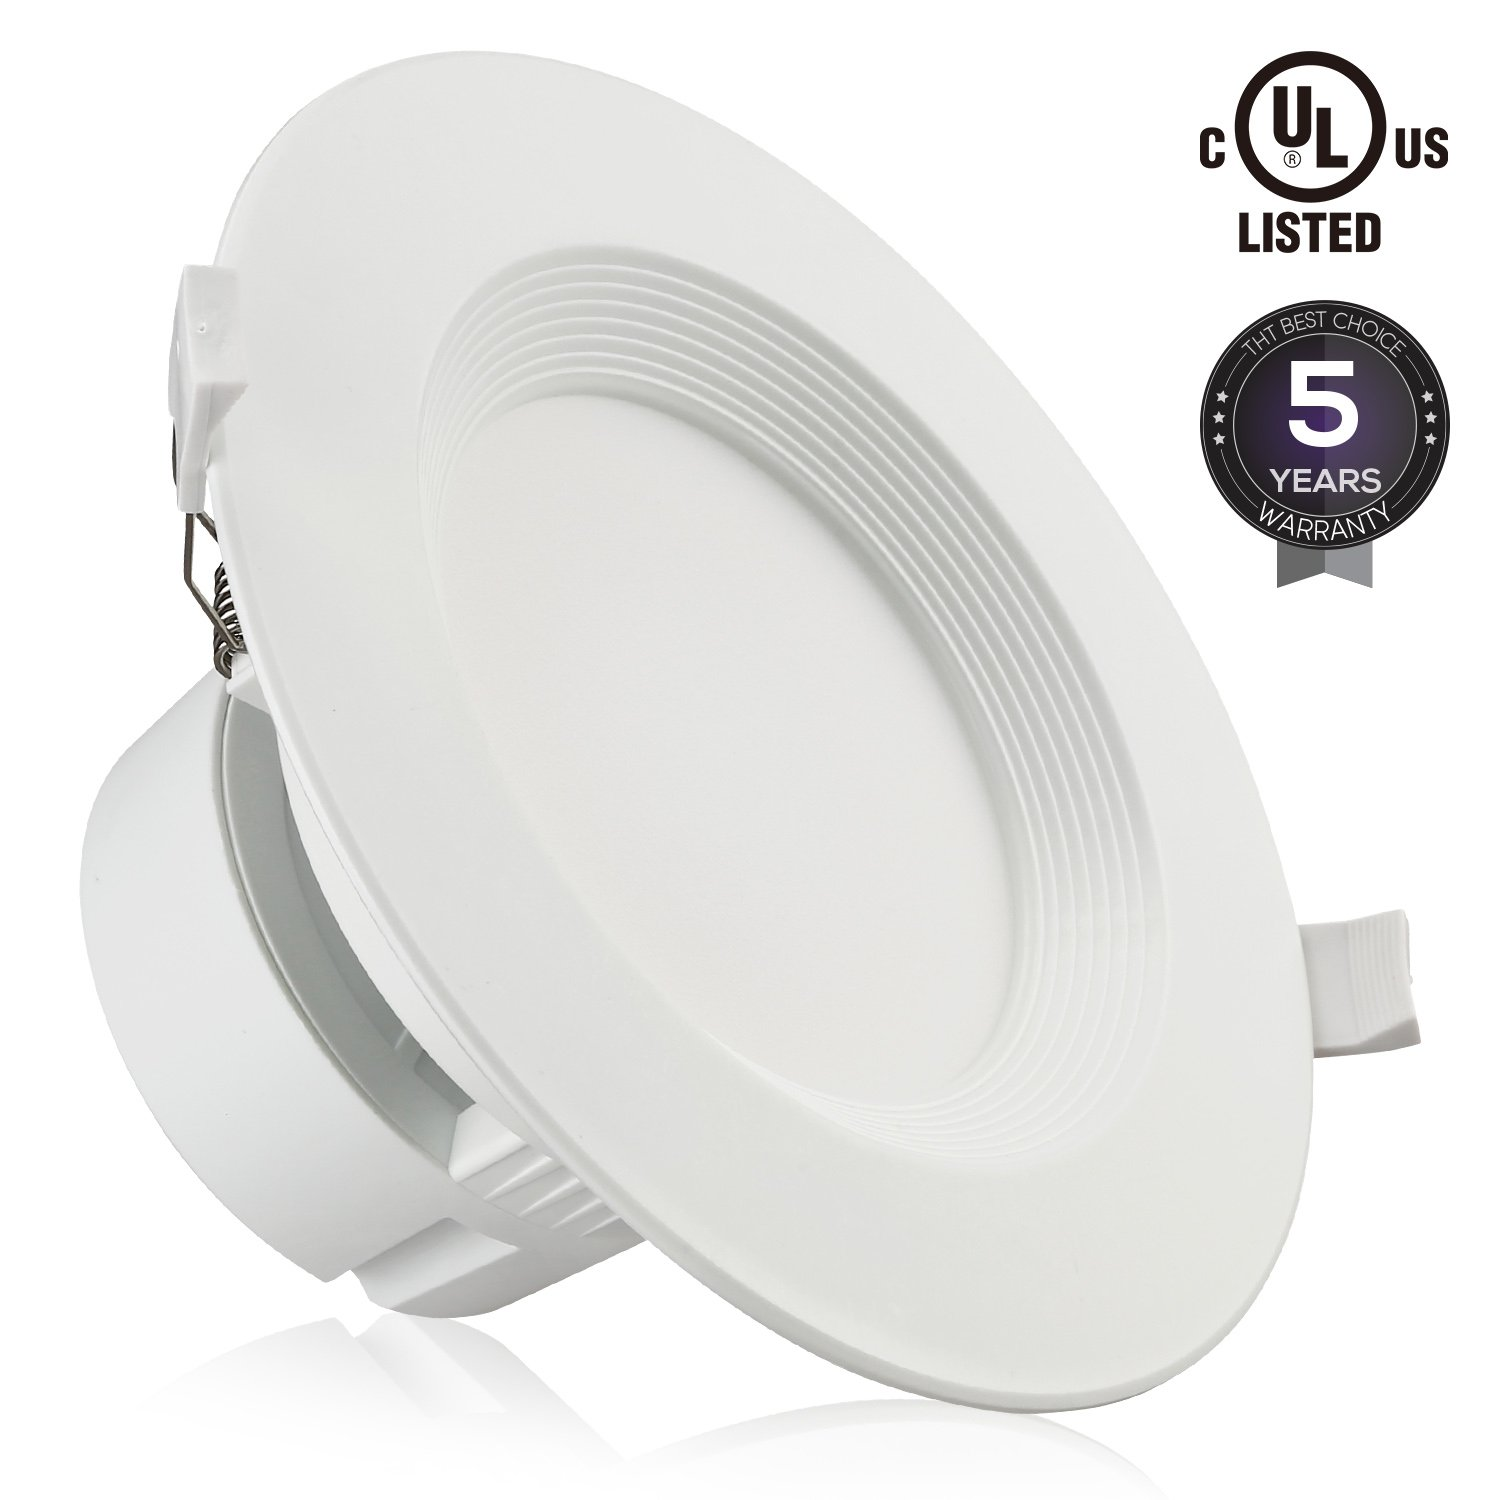 "TORCHSTAR 6"" LED Recessed Downlight with Junction Box, 9W (80W Equivalent) Dimmable LED Ceiling Light Fixture, IC-Rated & Air Tight, Wet Location, 5000K Daylight, UL-listed, 5 Years Warranty"